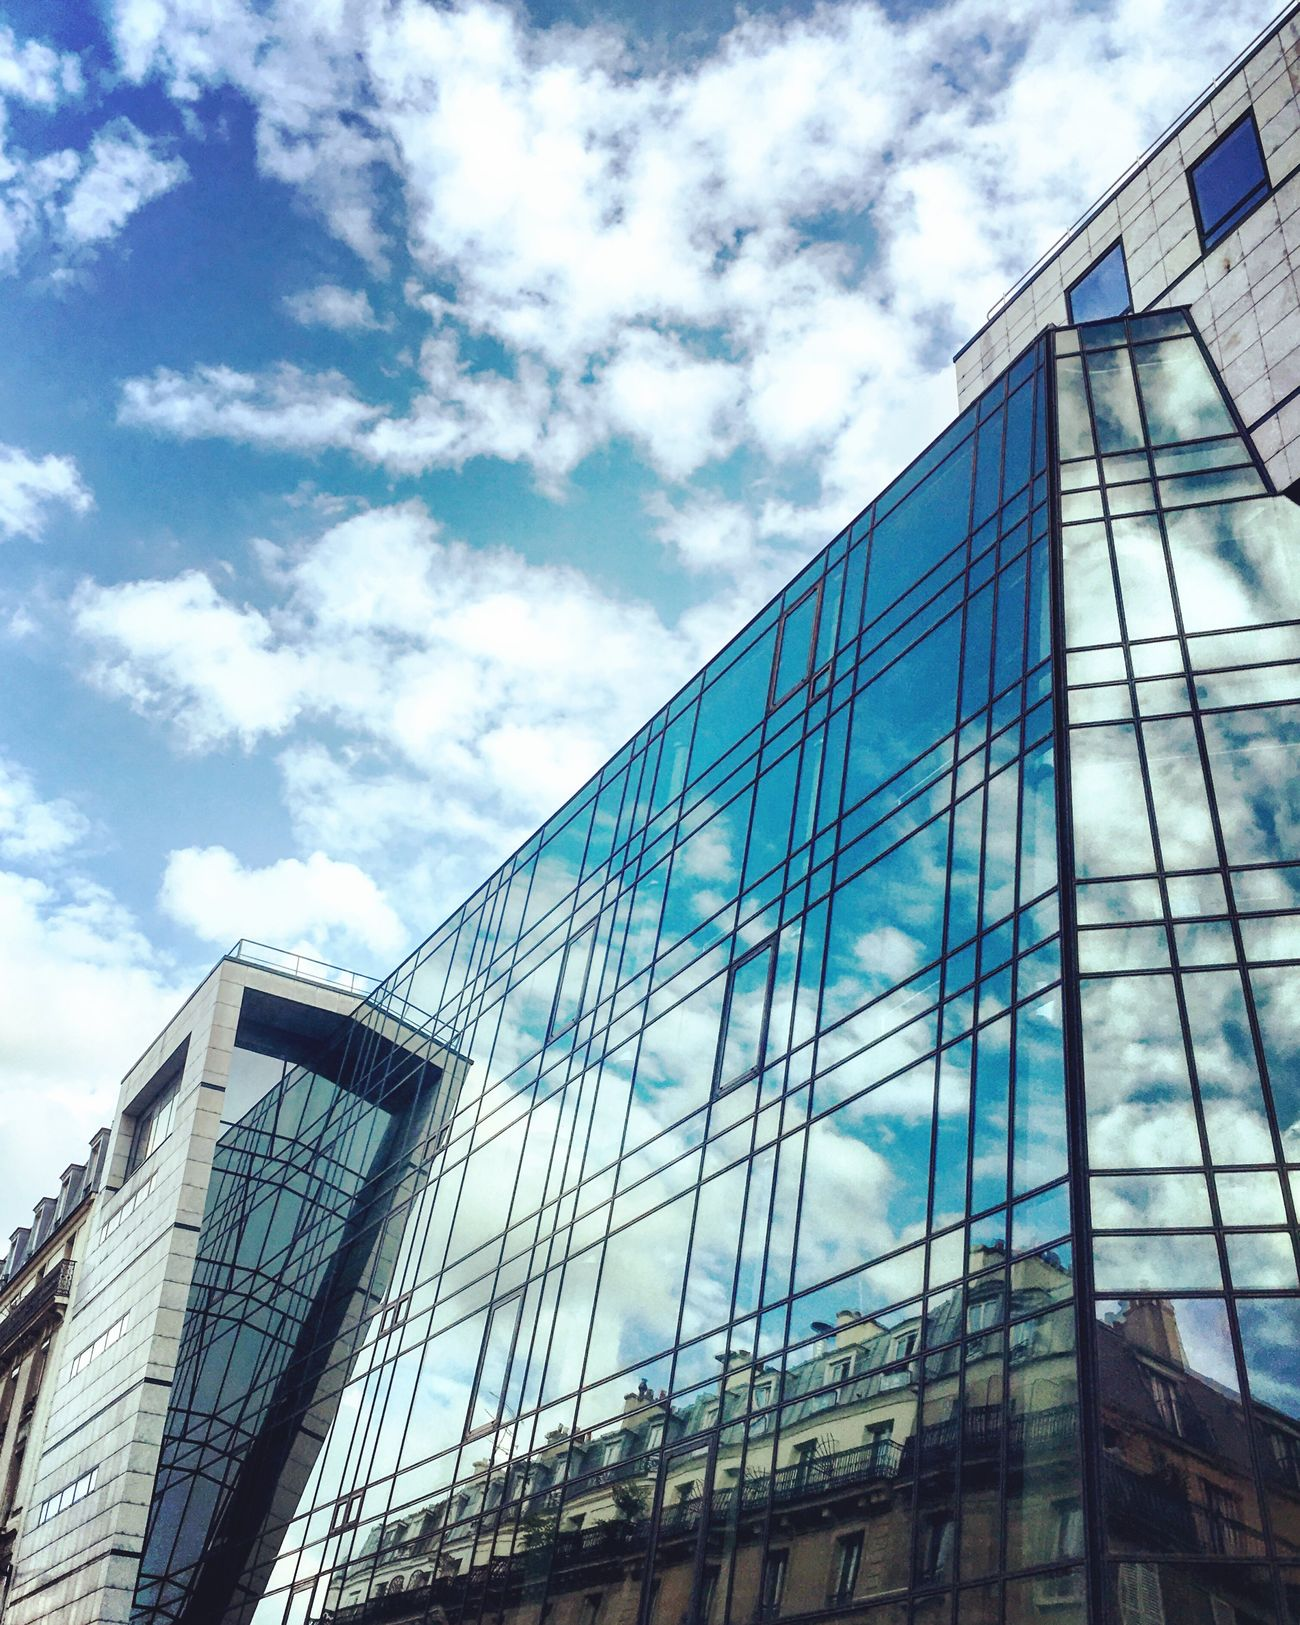 Buildings Reflection Windows Sky Clouds Street Streetphotography Geometry Perspective Urban Geometry Urban Architecture Architectural Detail Mmaff From My Point Of View Eye4photography  EyeEm Gallery Taking Photos Hello World